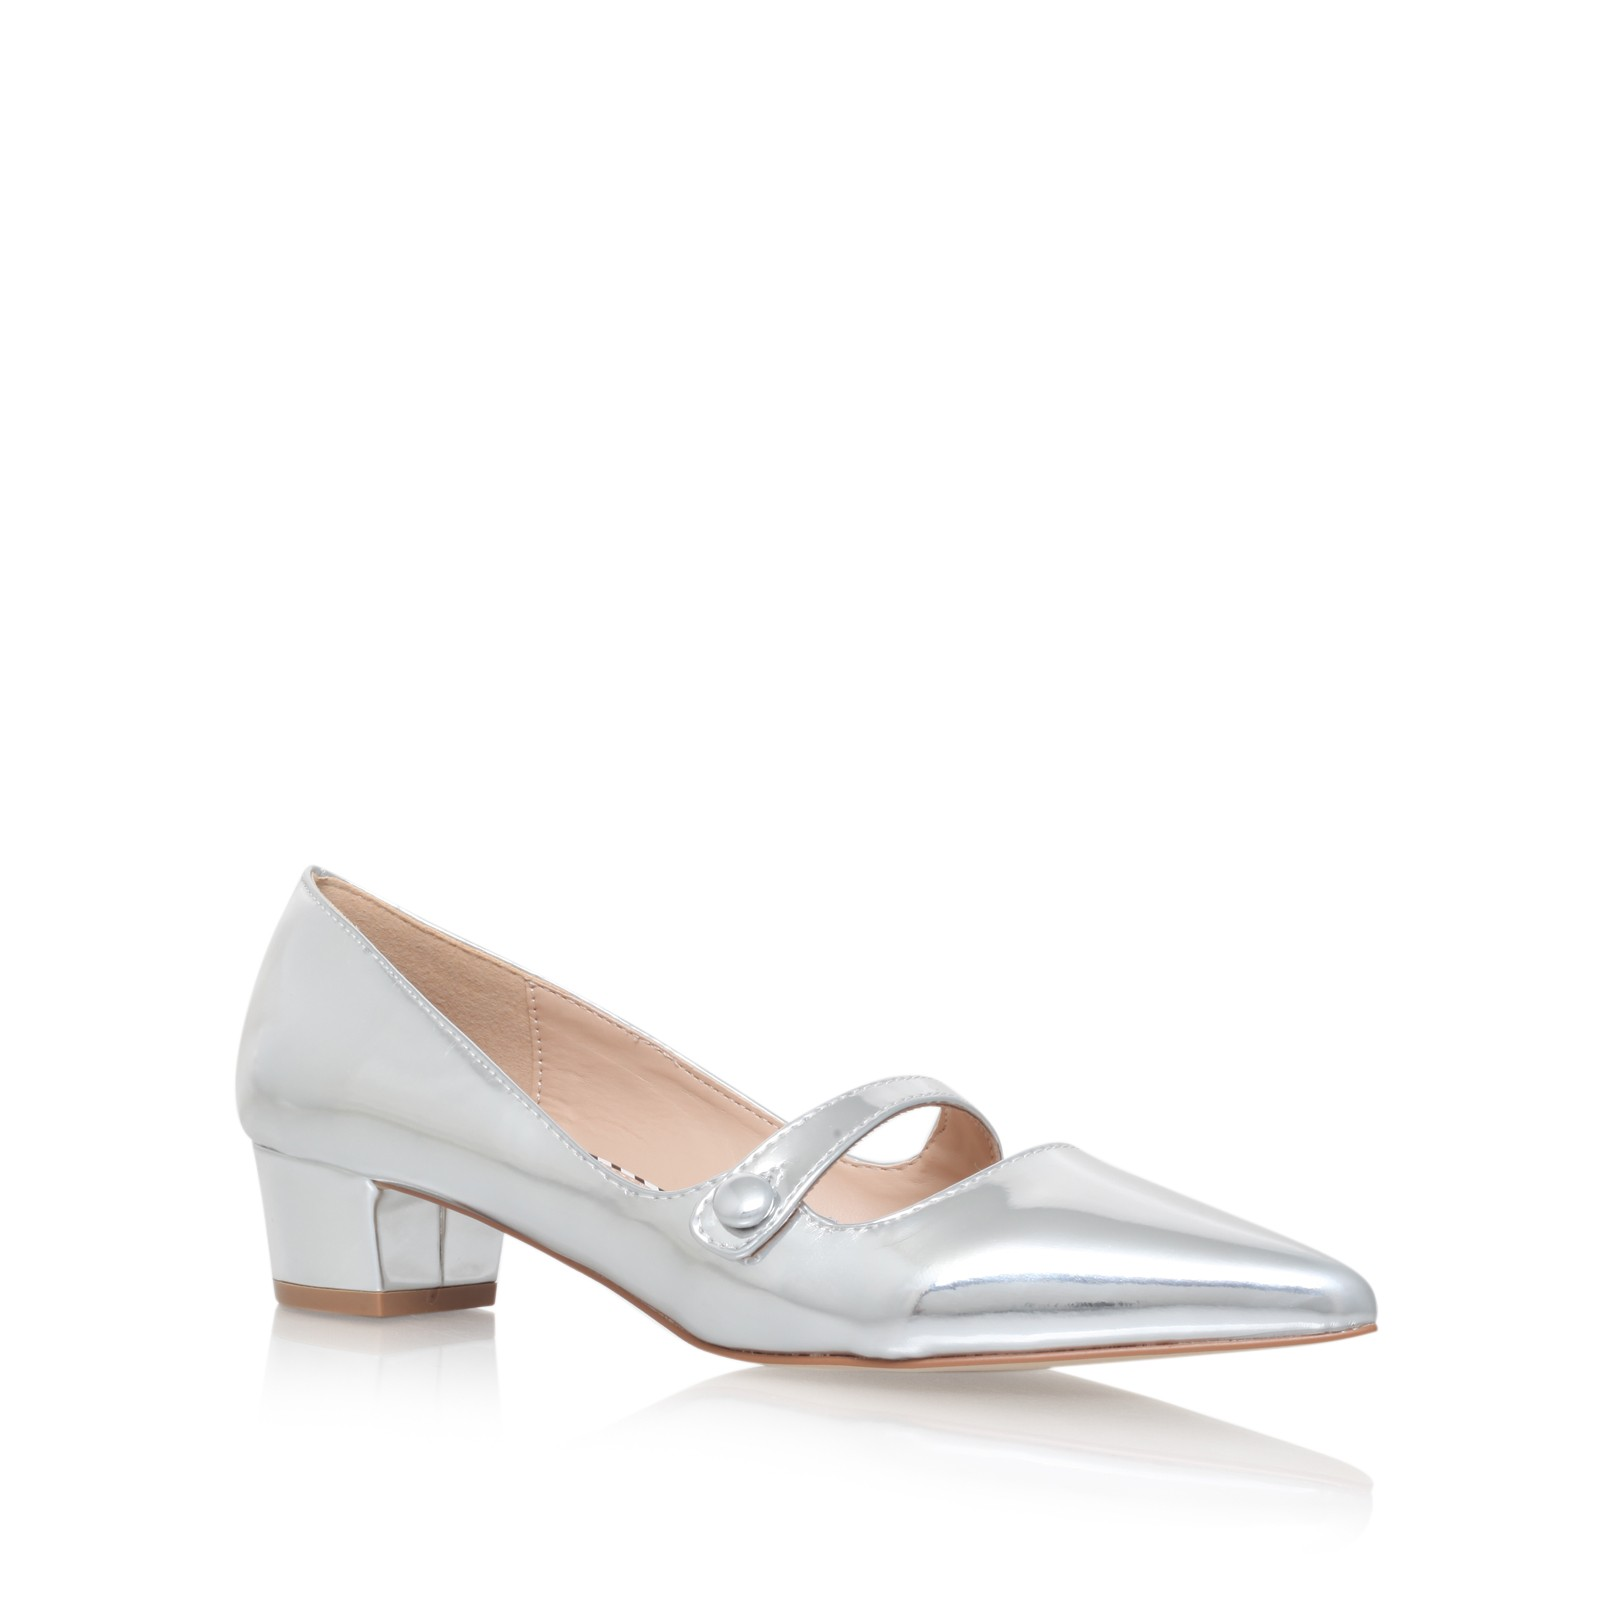 6d8ea8b9233e AUDRINA Silver Low Heel Court Shoes by Miss KG